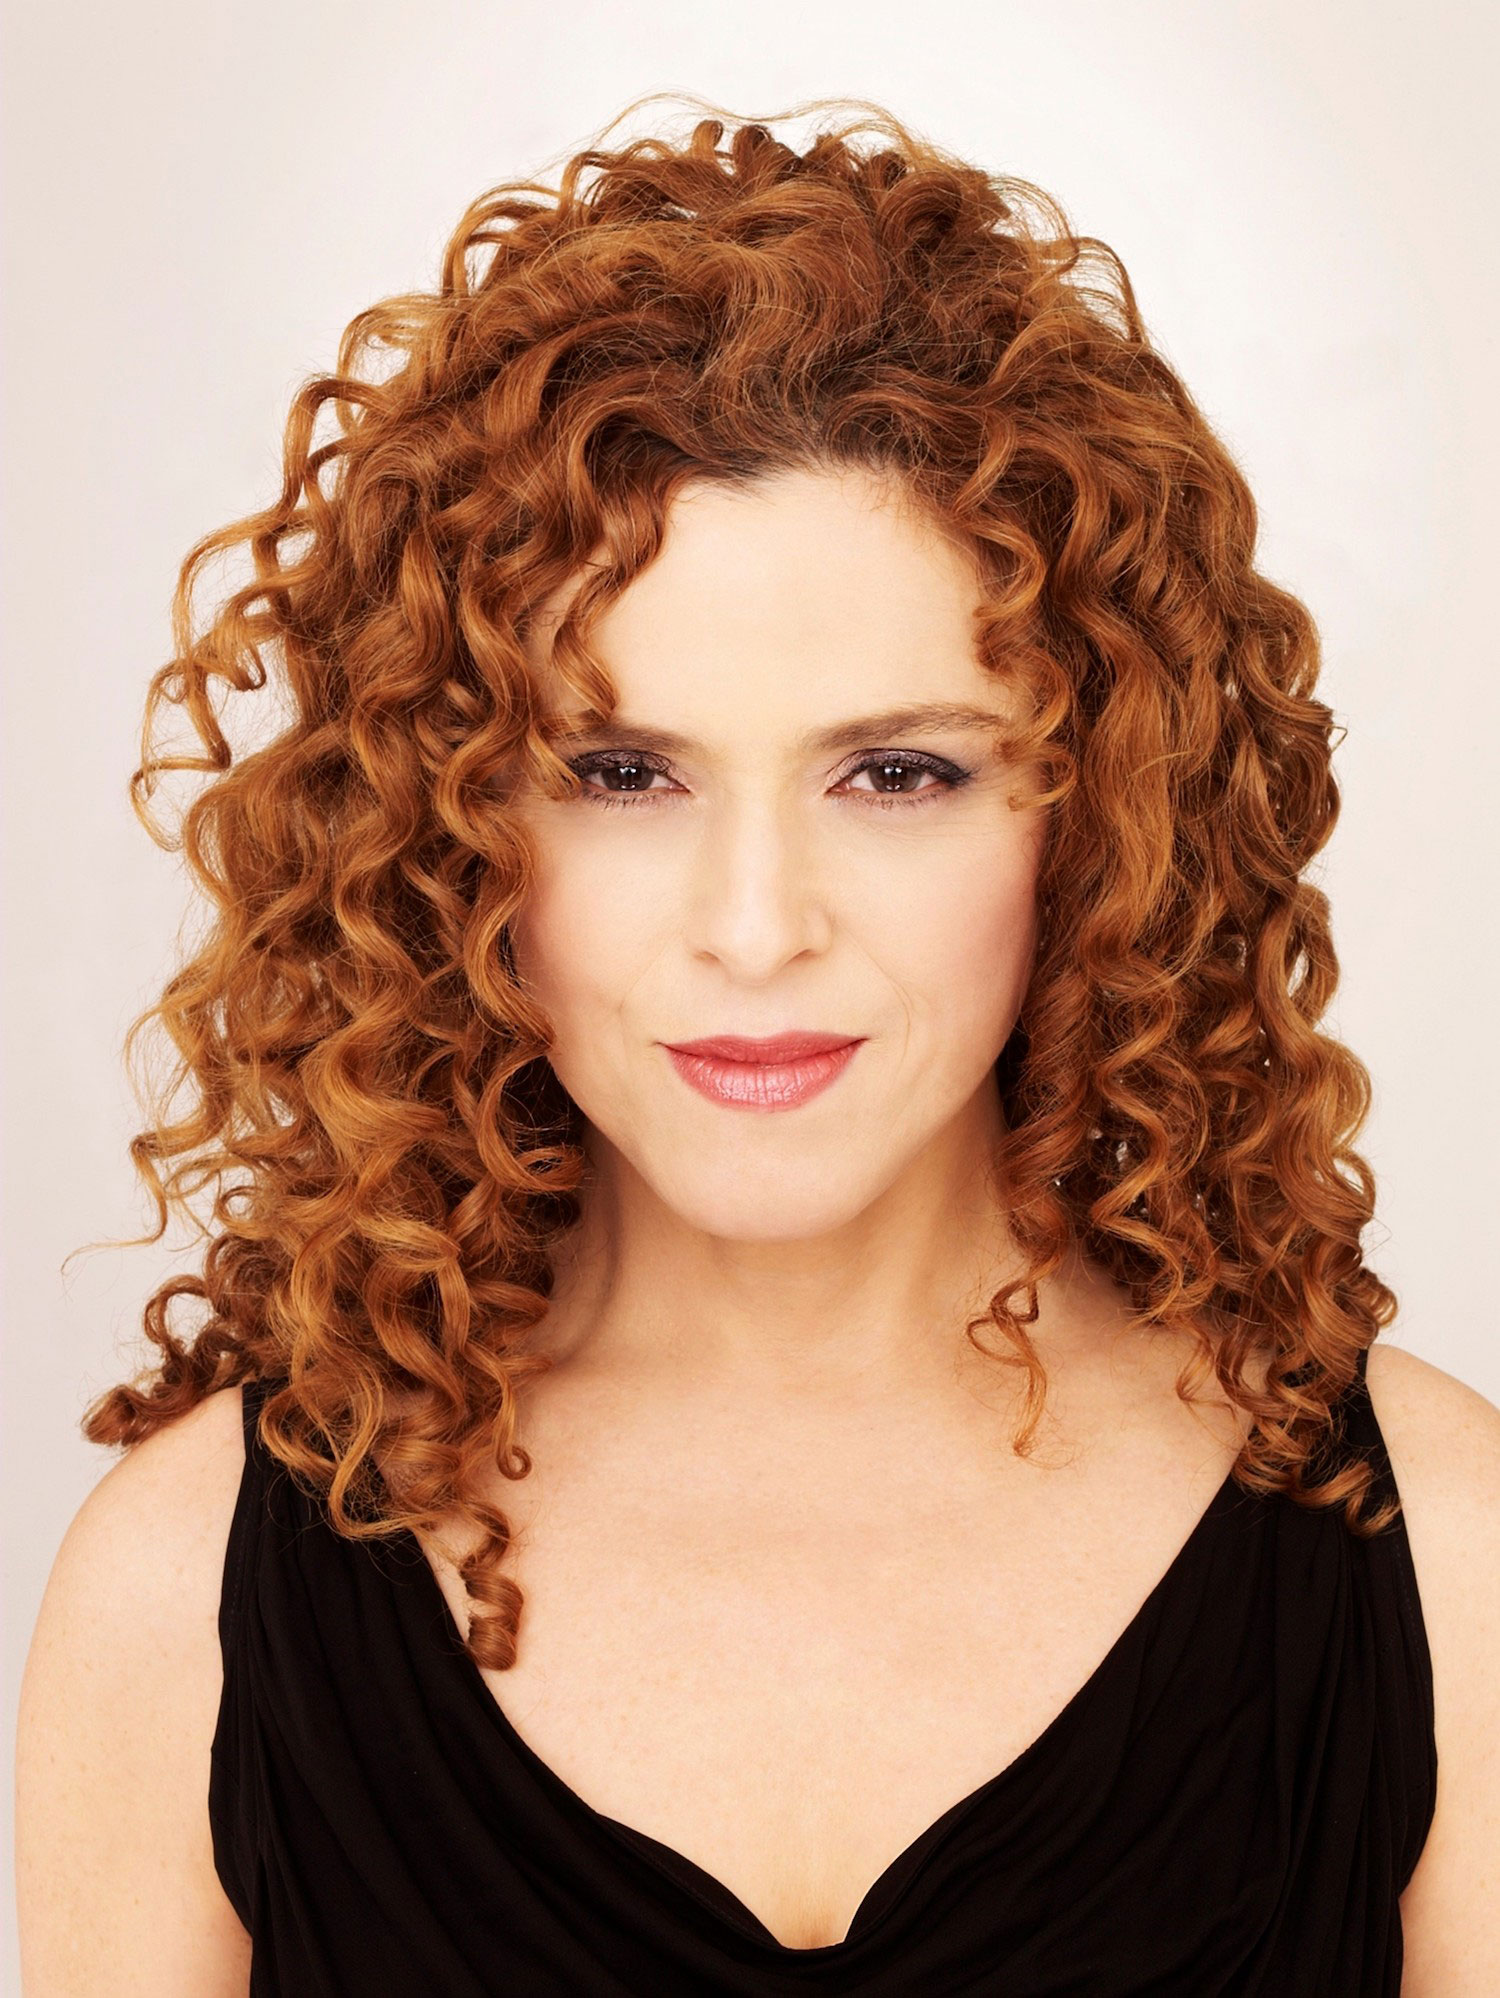 Segerstrom Center Bernadette Peters